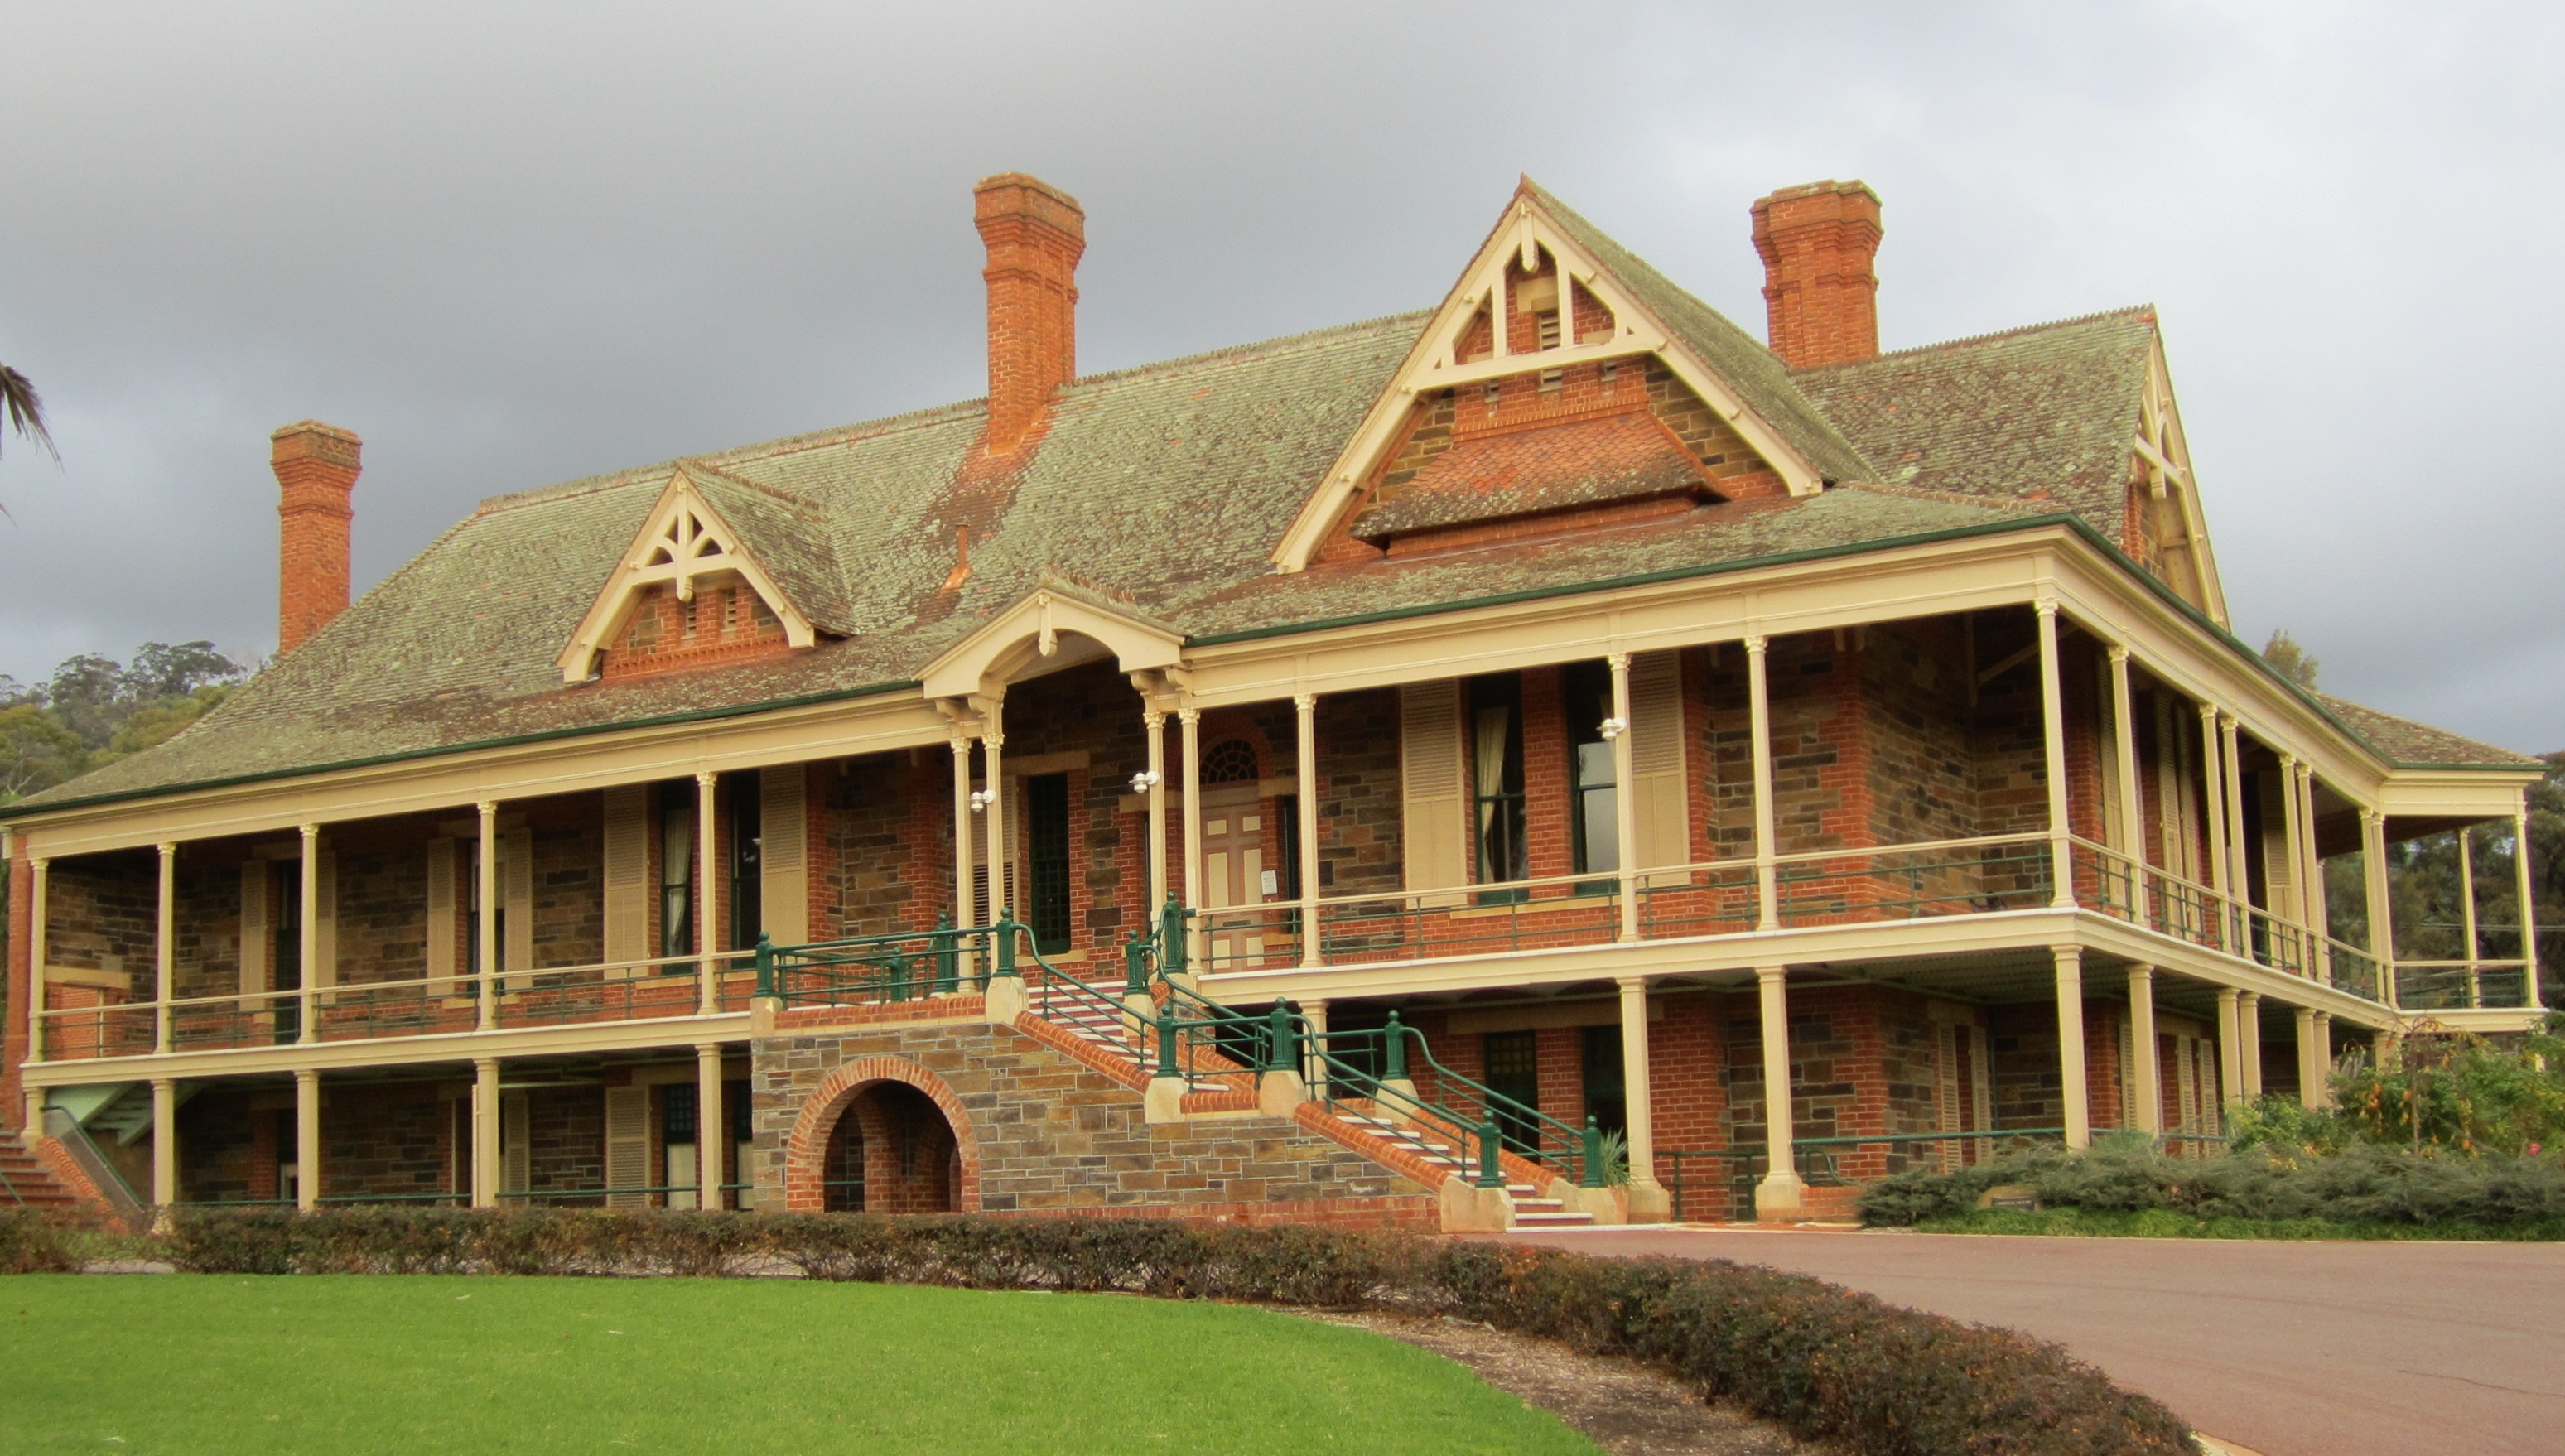 Urrbrae House on Waite Campus, University of Adelaide